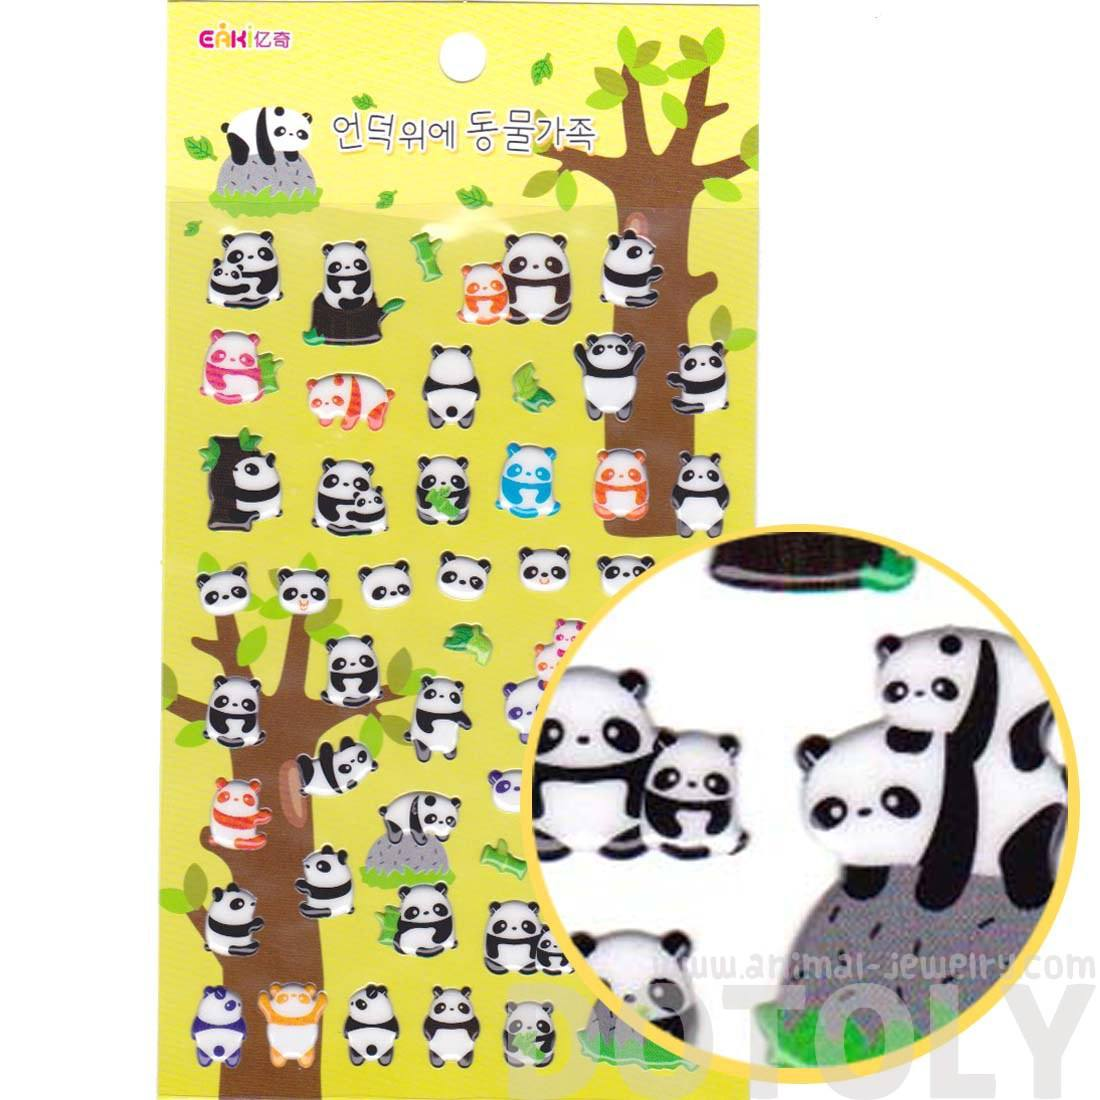 Baby Panda Bear Shaped Animal Themed Puffy Stickers for Scrapbooking